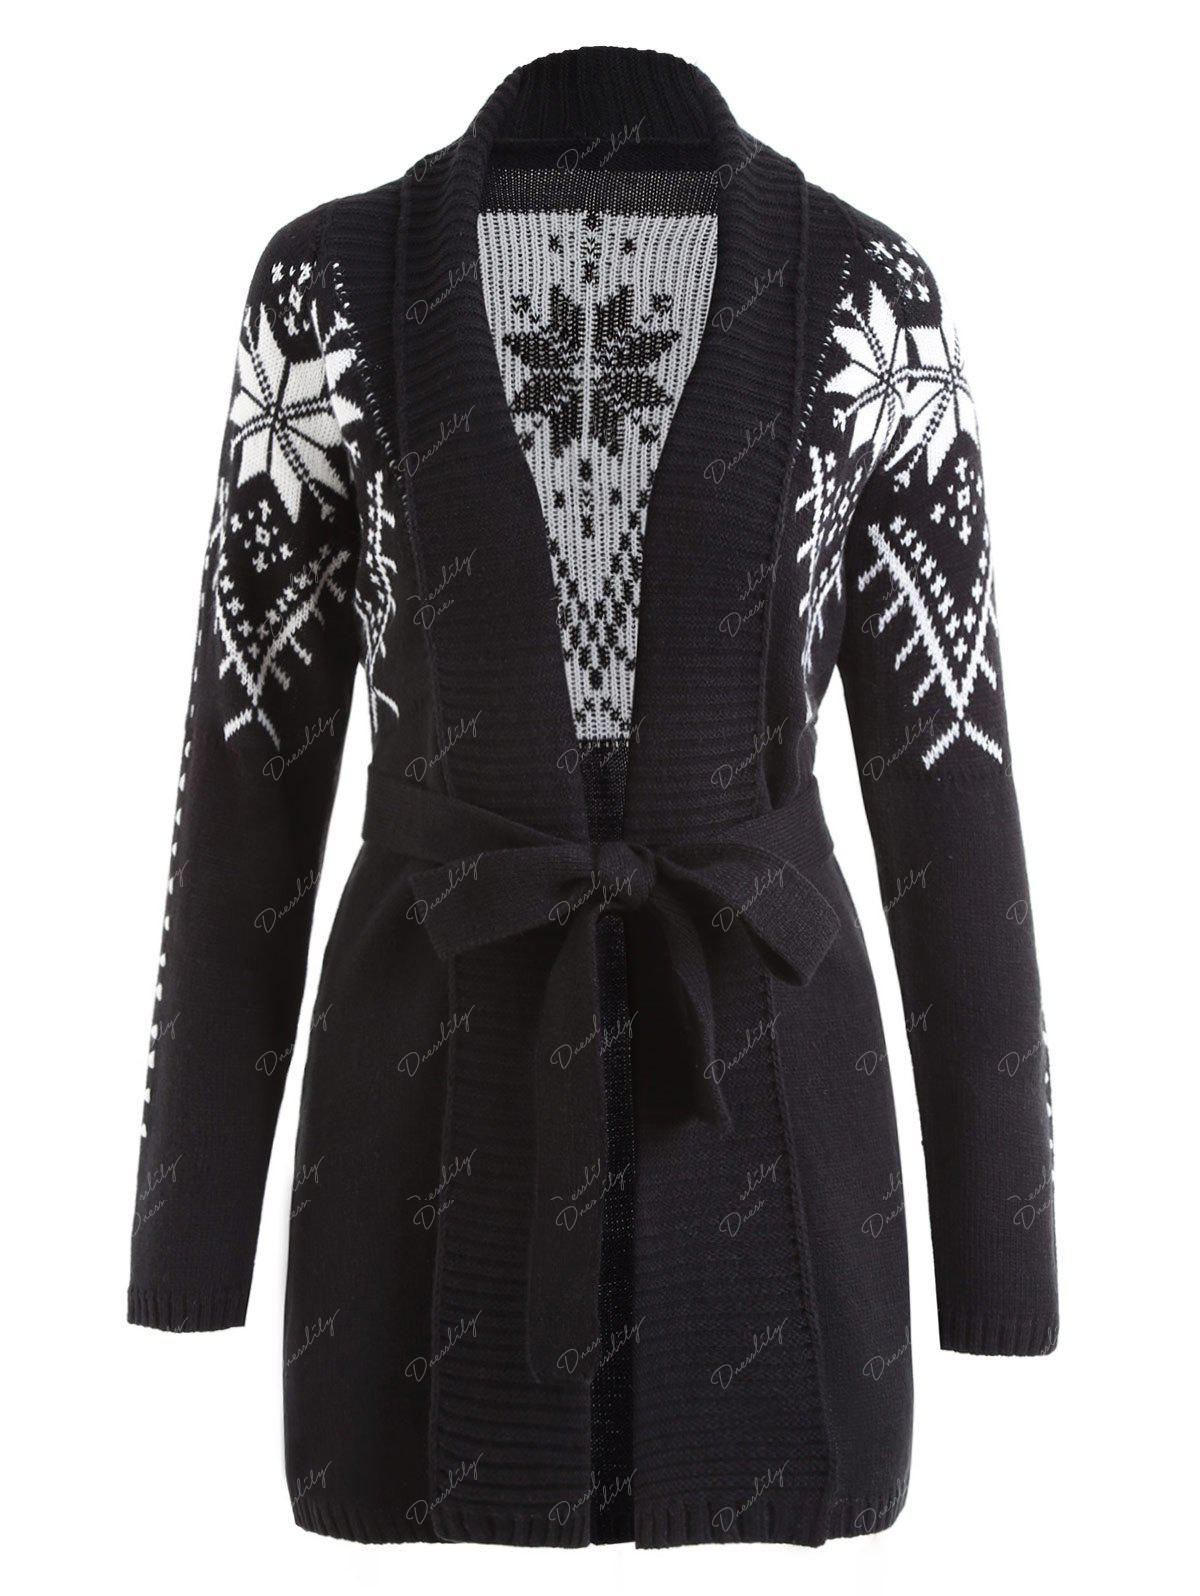 2018 Shawl Collar Snowflake Jacquard Wrap Cardigan BLACK M In ...